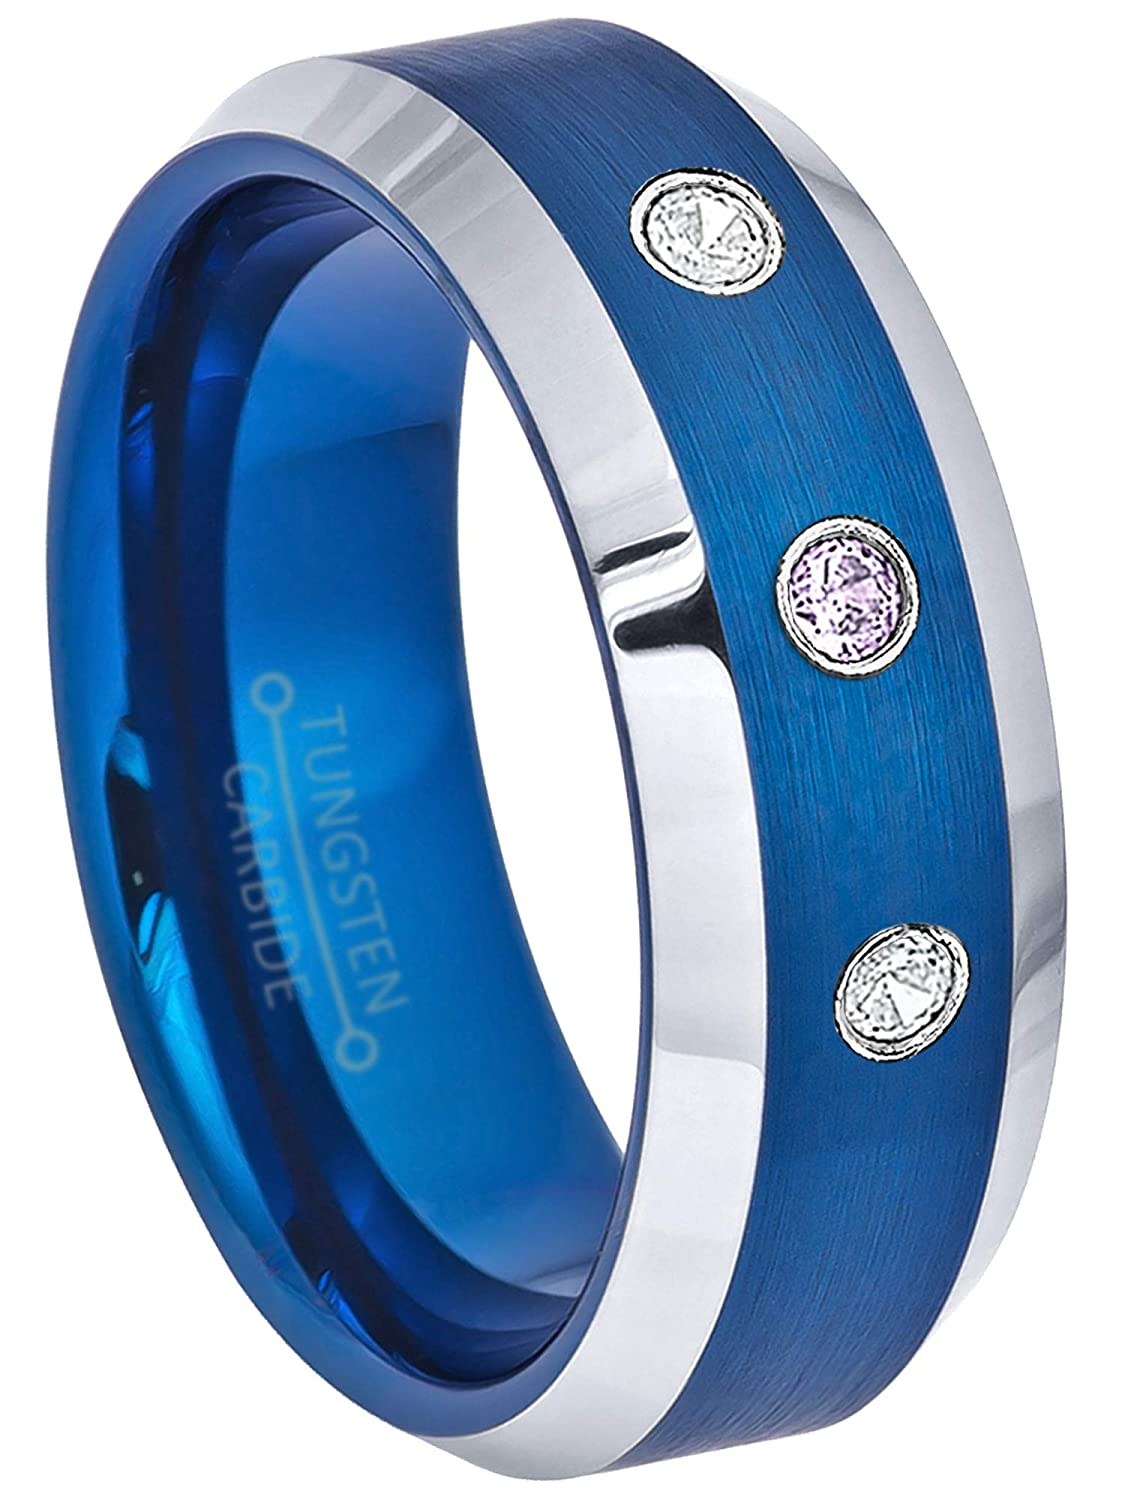 Comfort Fit Tungsten Carbide Ring Tungsten Wedding Ring February Birthstone Ring 0.21ctw Amethyst /& Diamond 3-Stone Anniversary Band 8mm Brushed Finish Blue Tungsten Ring